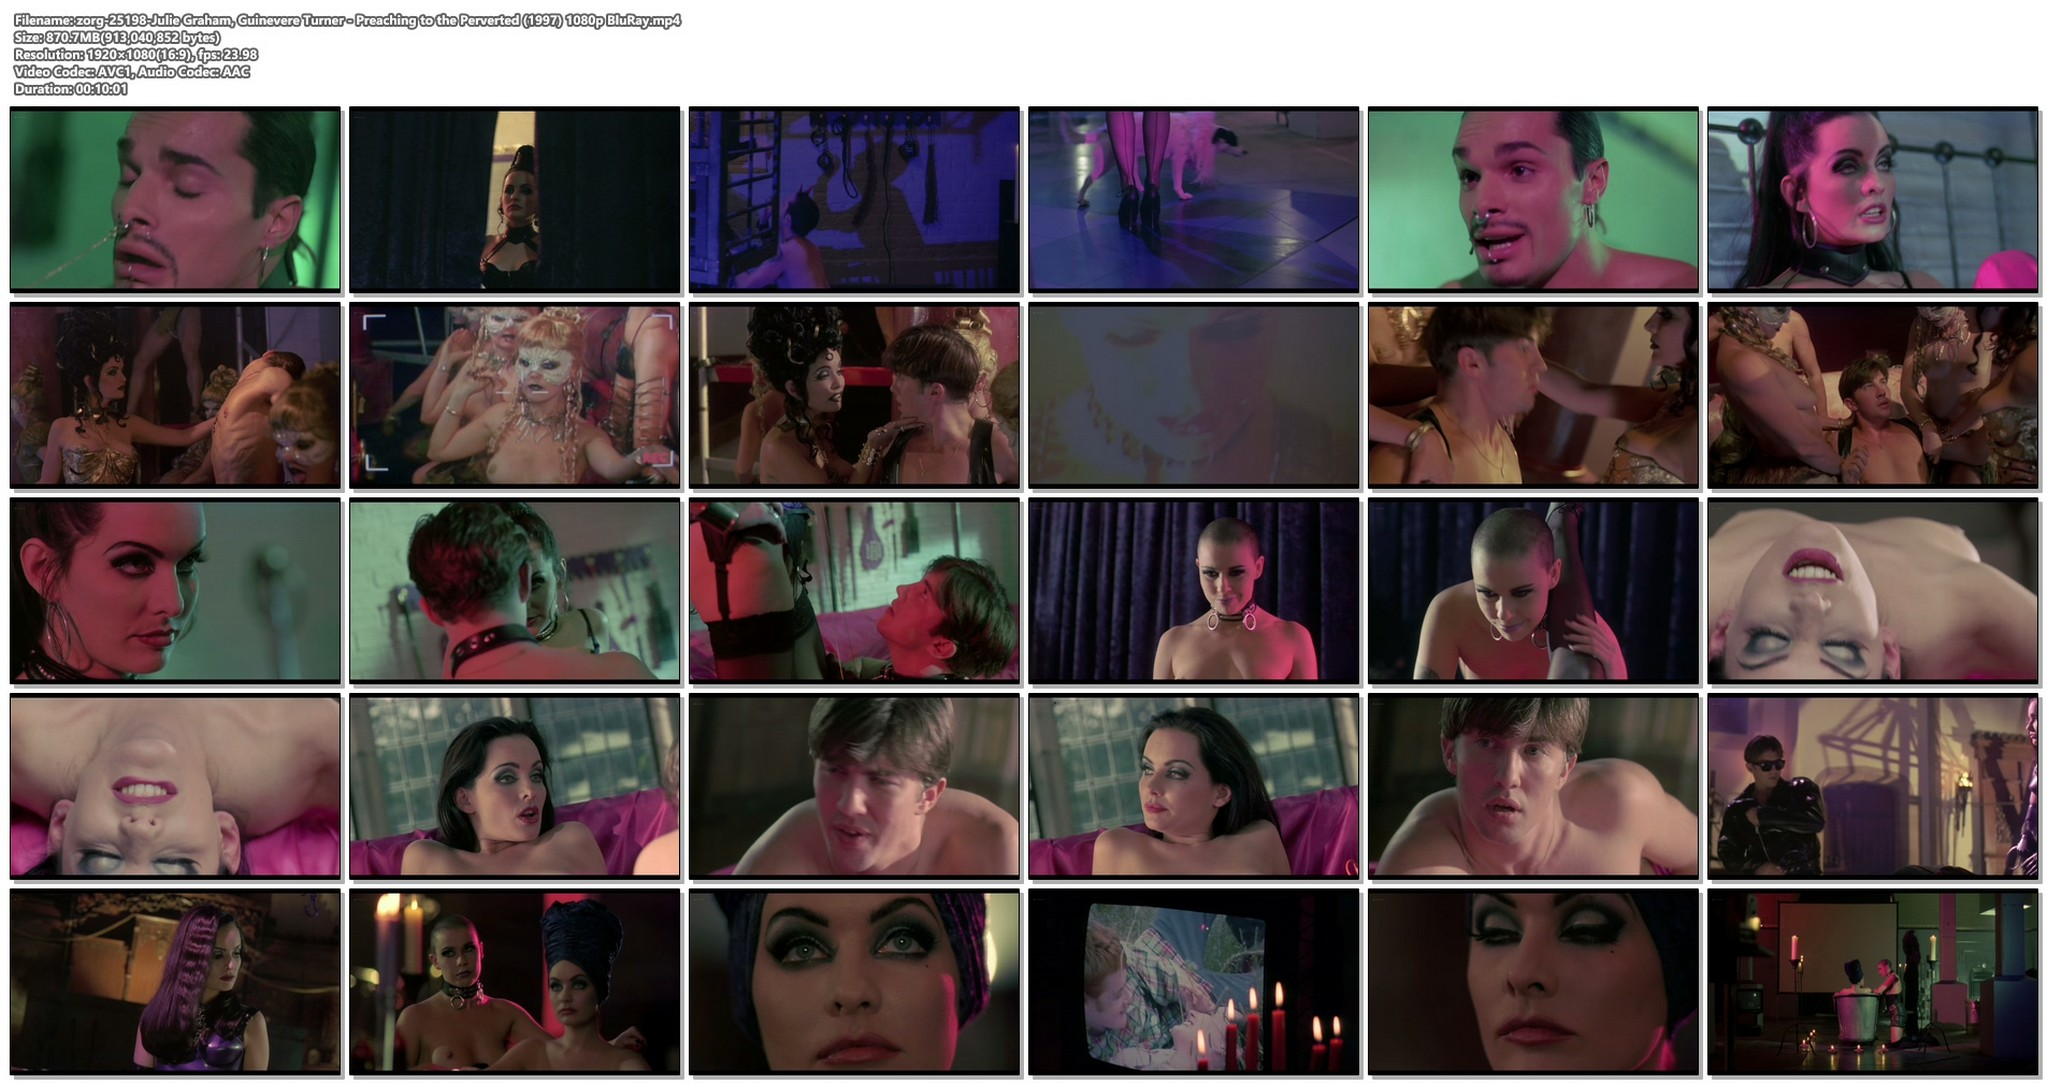 Julie Graham nude bush Guinevere Turner nude sex BDSM Preaching to the Perverted 1997 1080p BluRay 19